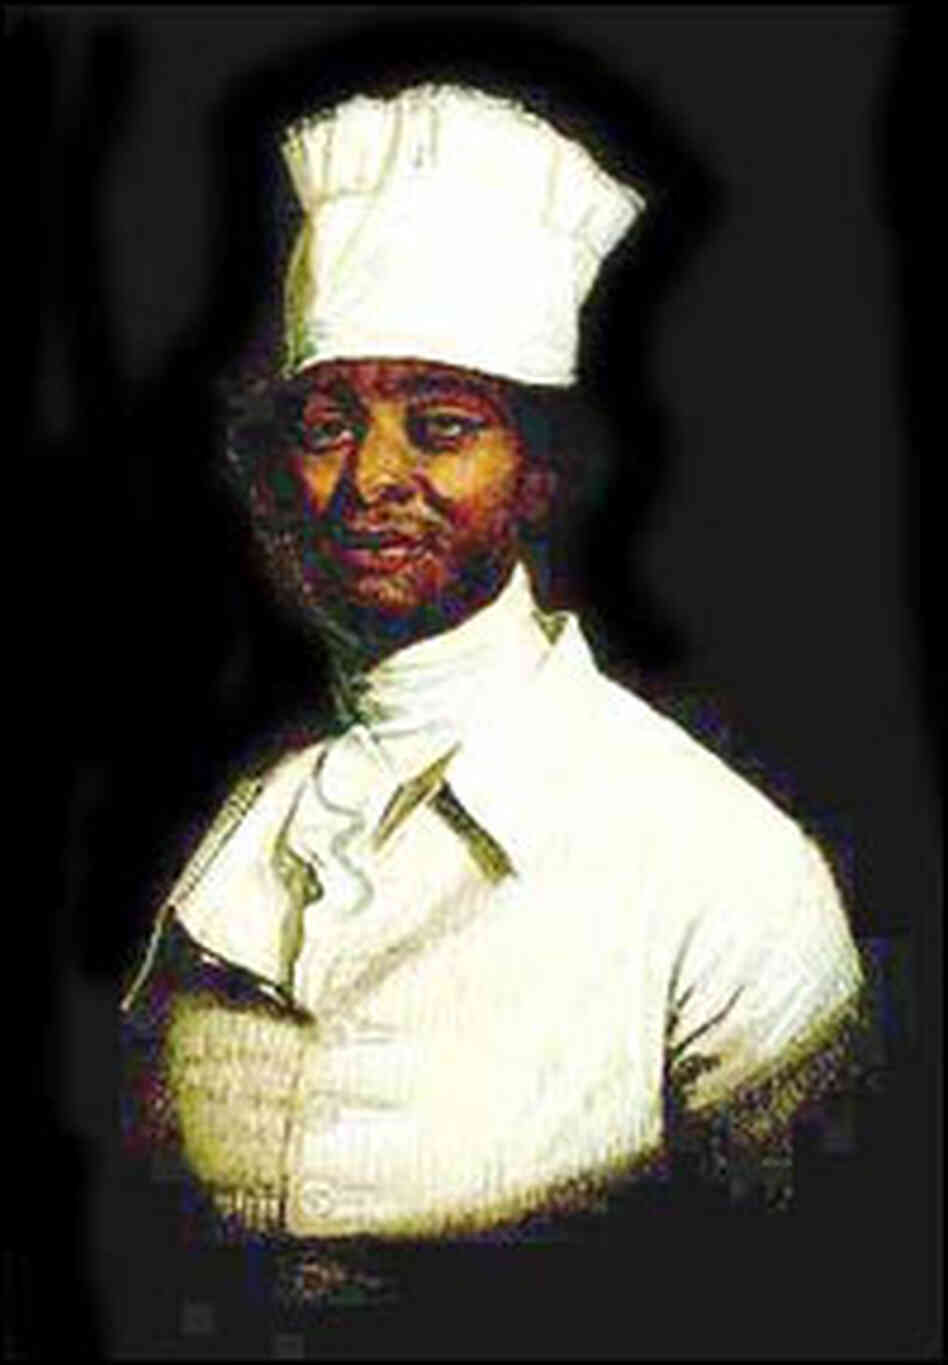 Presumed portrait of Hercules, George Washington's enslaved cook.